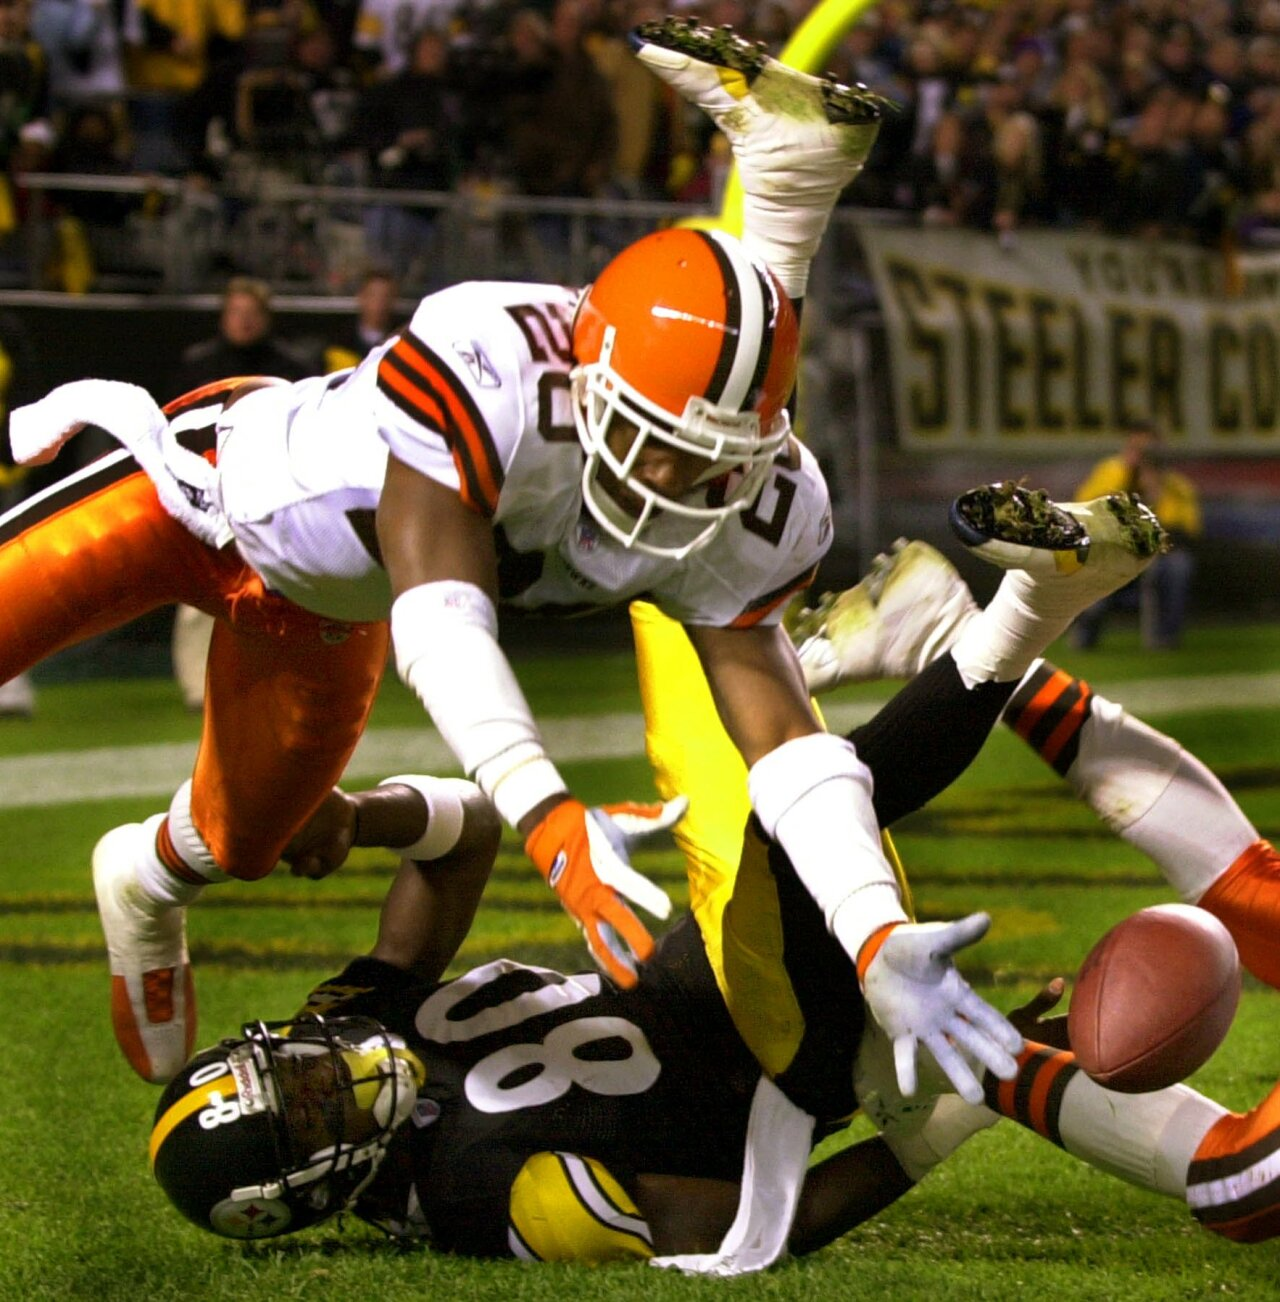 Browns win at Heinz Field